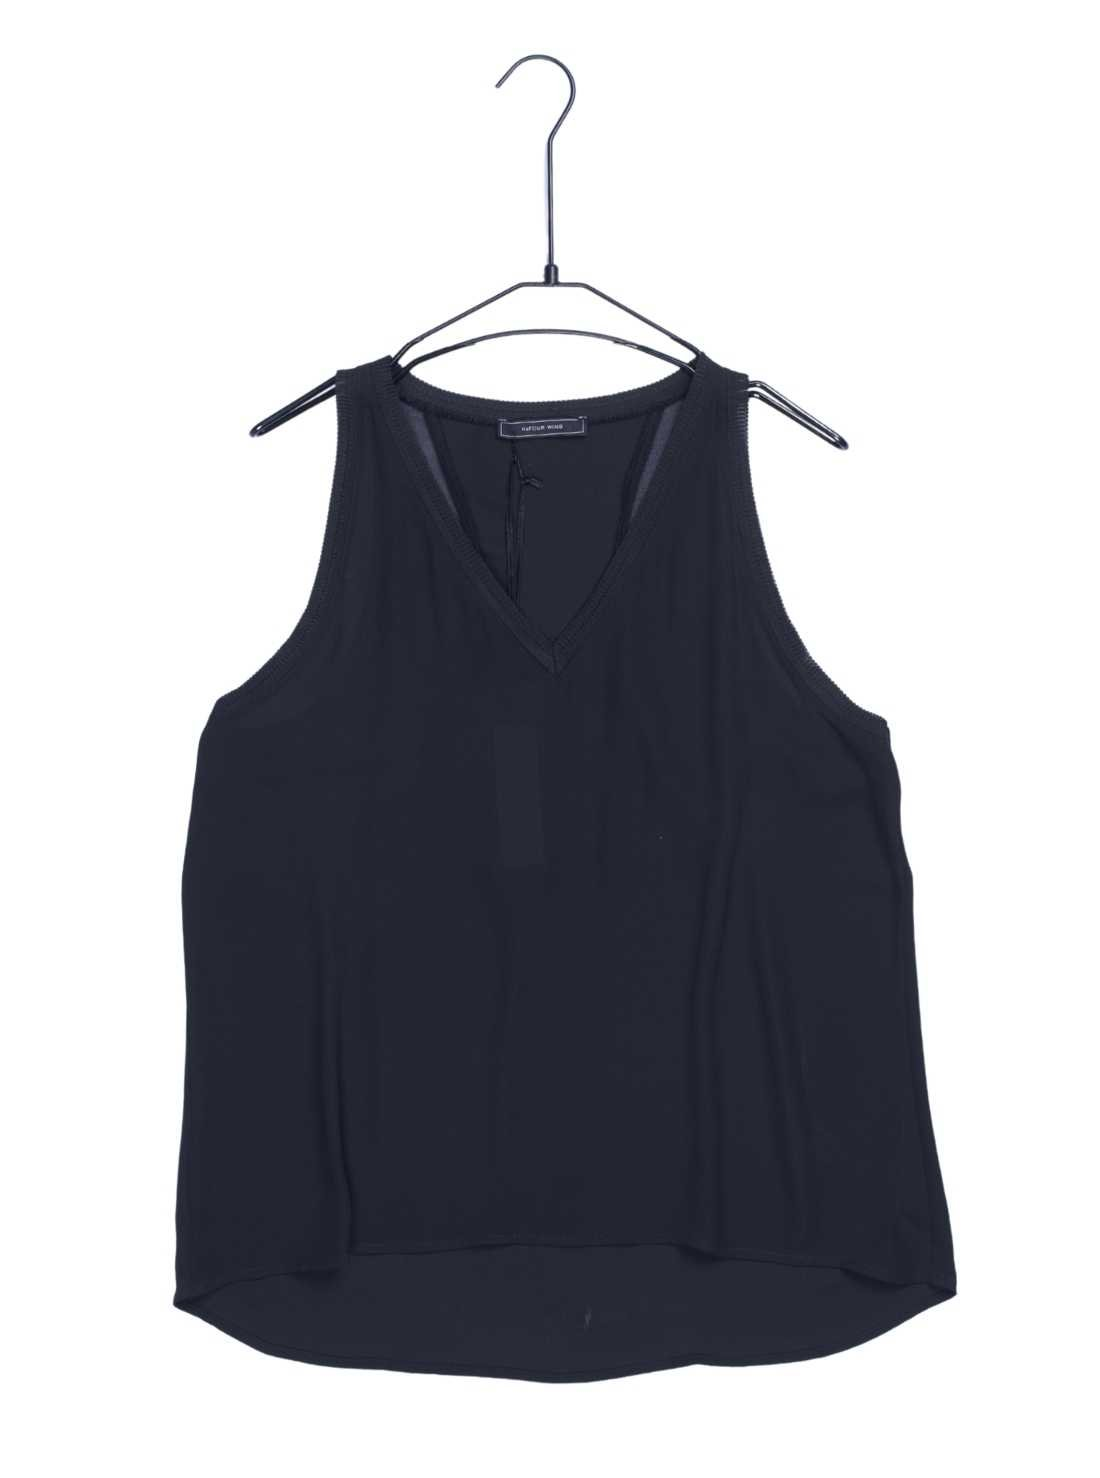 Polyester Crepe Tank Top with Viscose Rib at Neckline and Armhole